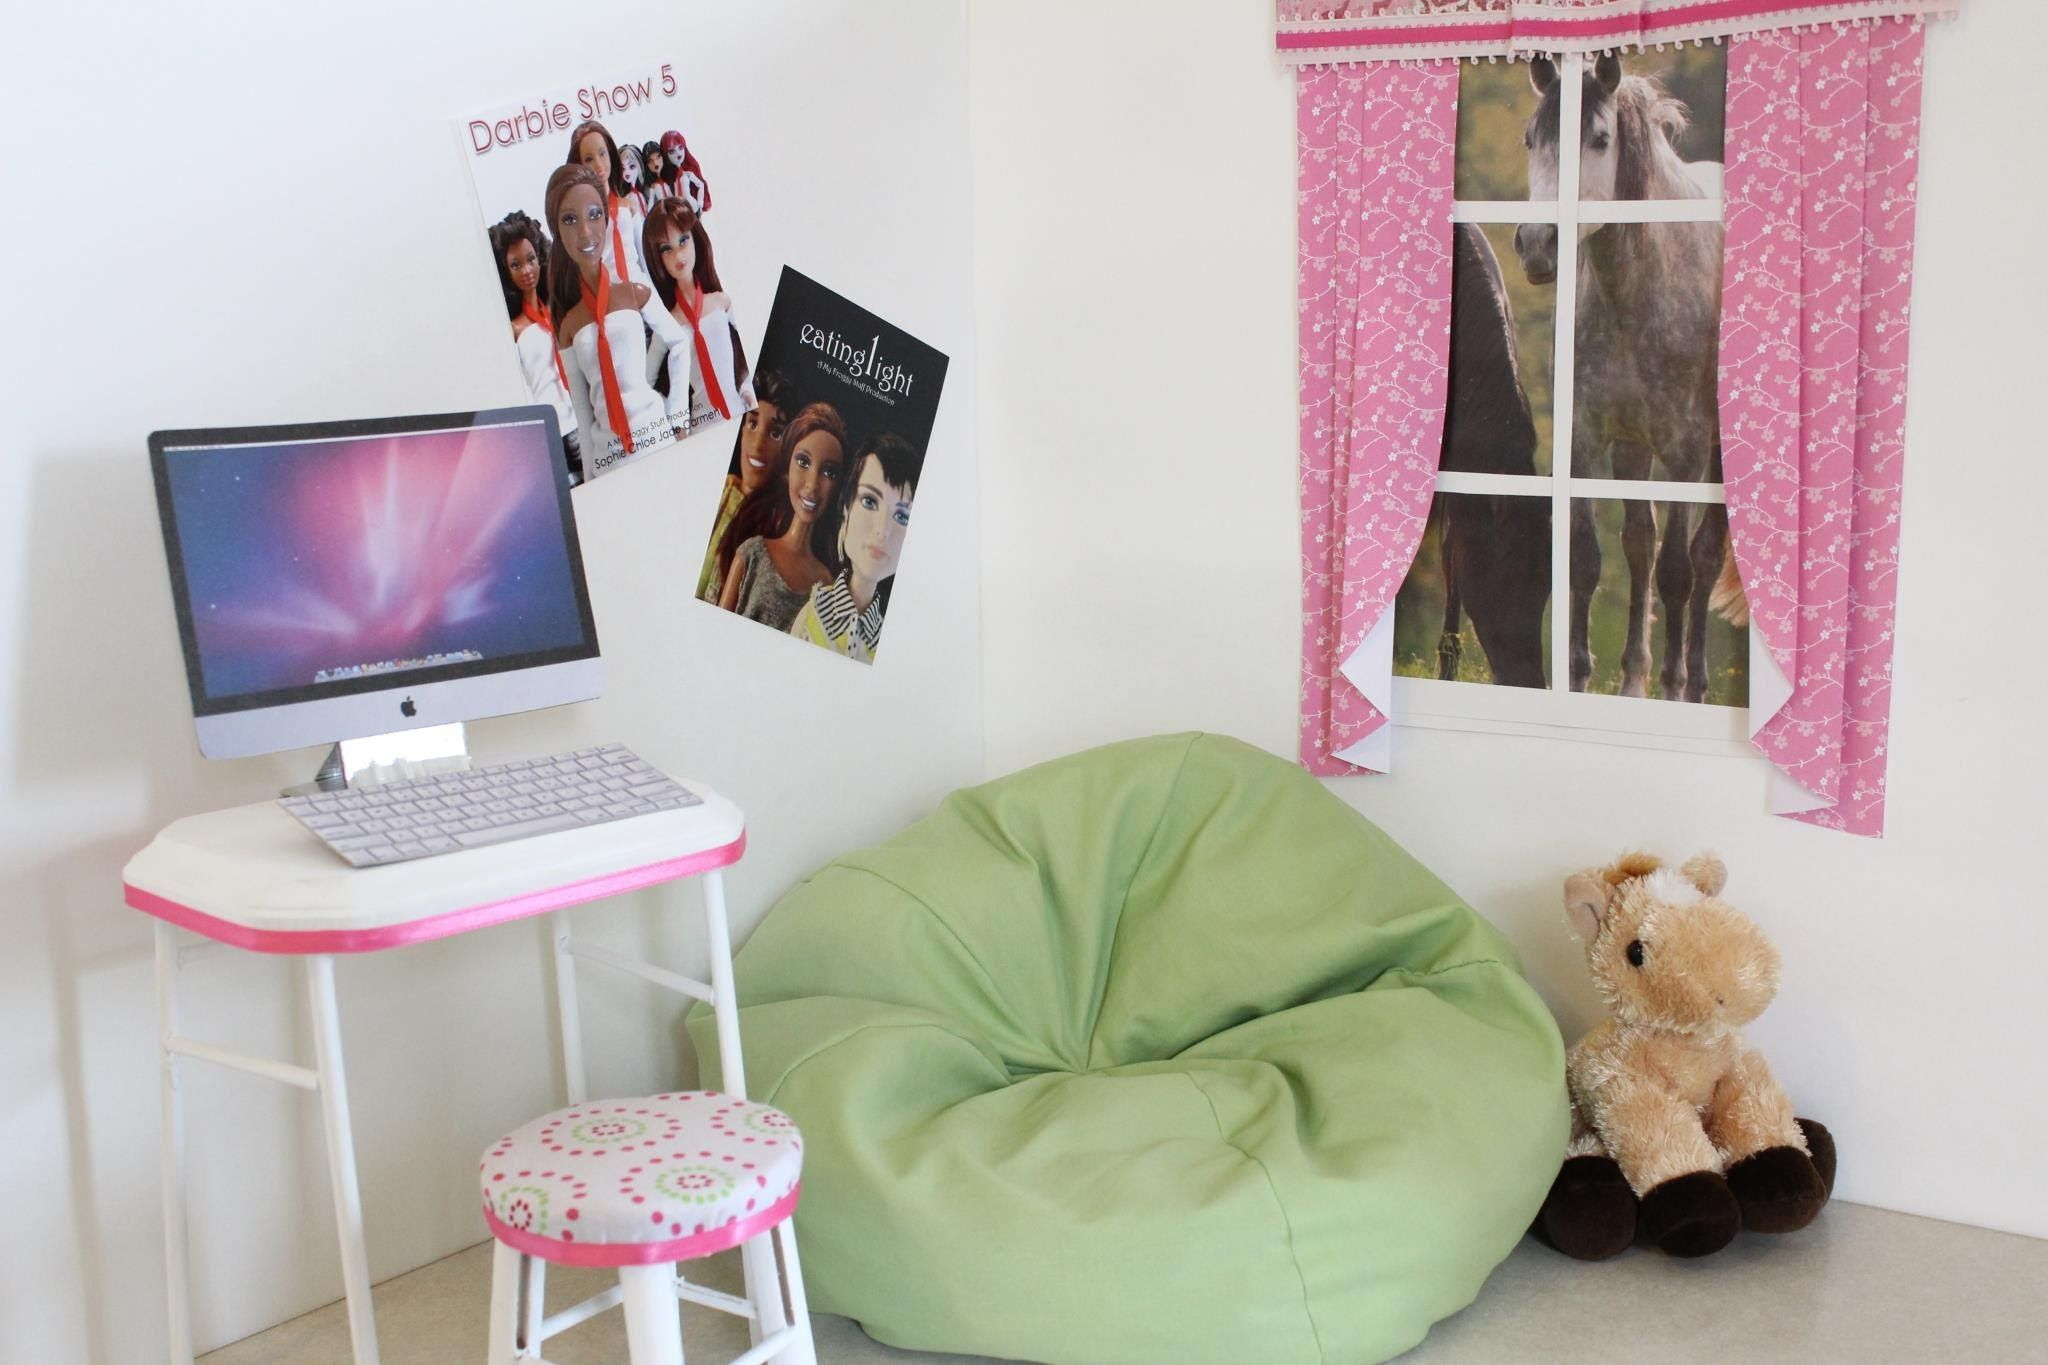 Barbie Bean Bag Chair Pier One Rooster How To Make A Doll Beanbag This Woman Is Amazing I Wish Could Hang Out With Her